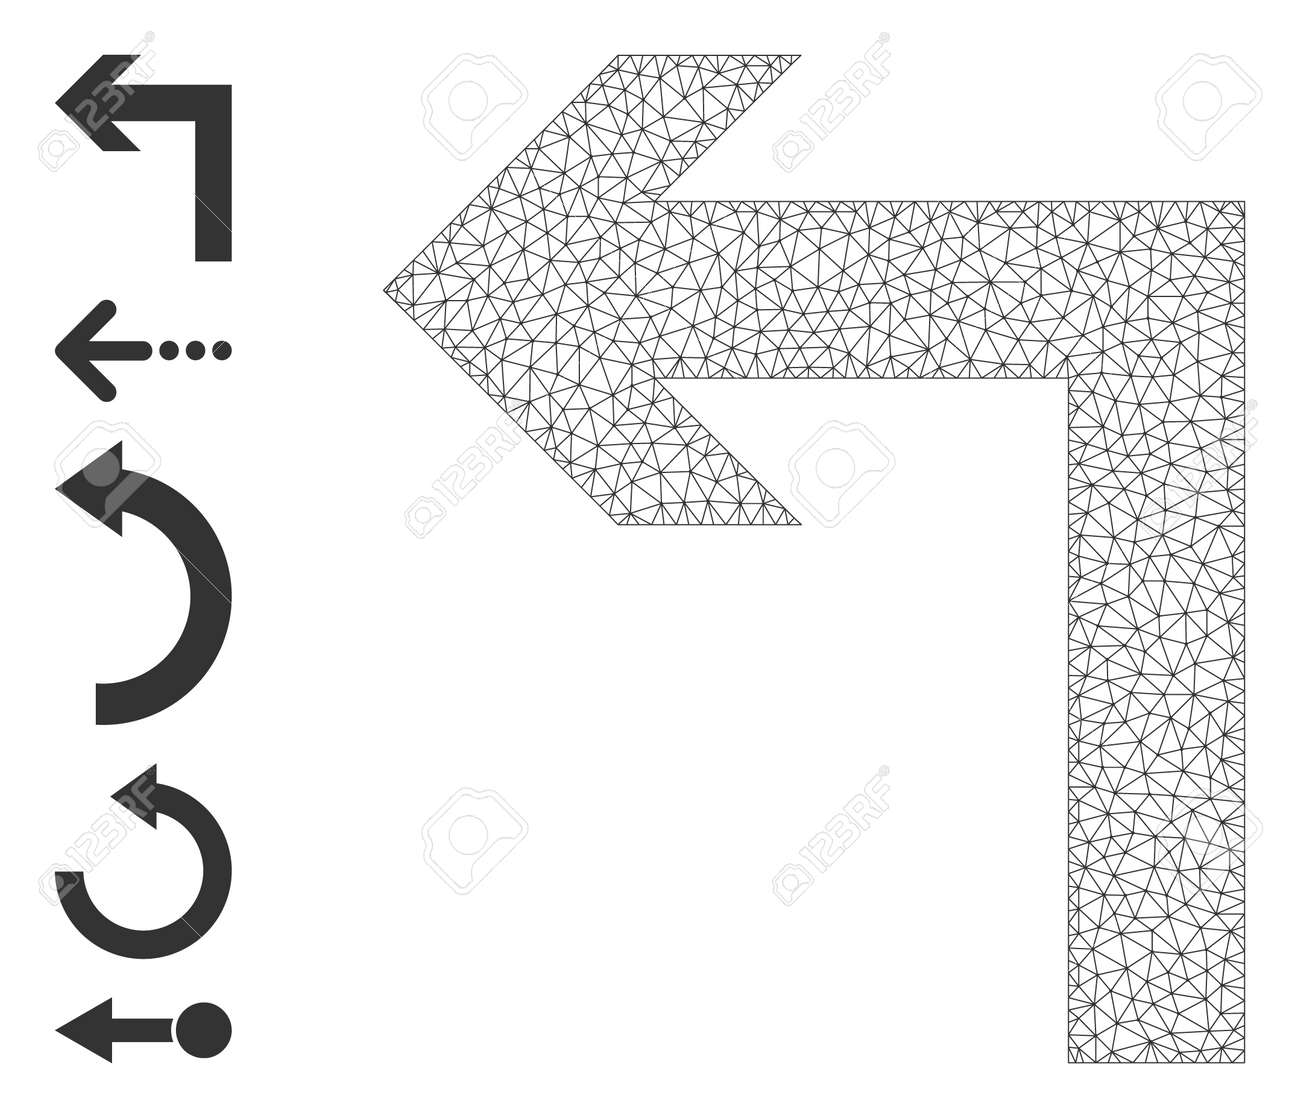 Mesh network turn left icon with simple carcass created from turn left vector illustration. Carcass mesh polygonal turn left. Linear carcass flat mesh in vector format. - 172381205